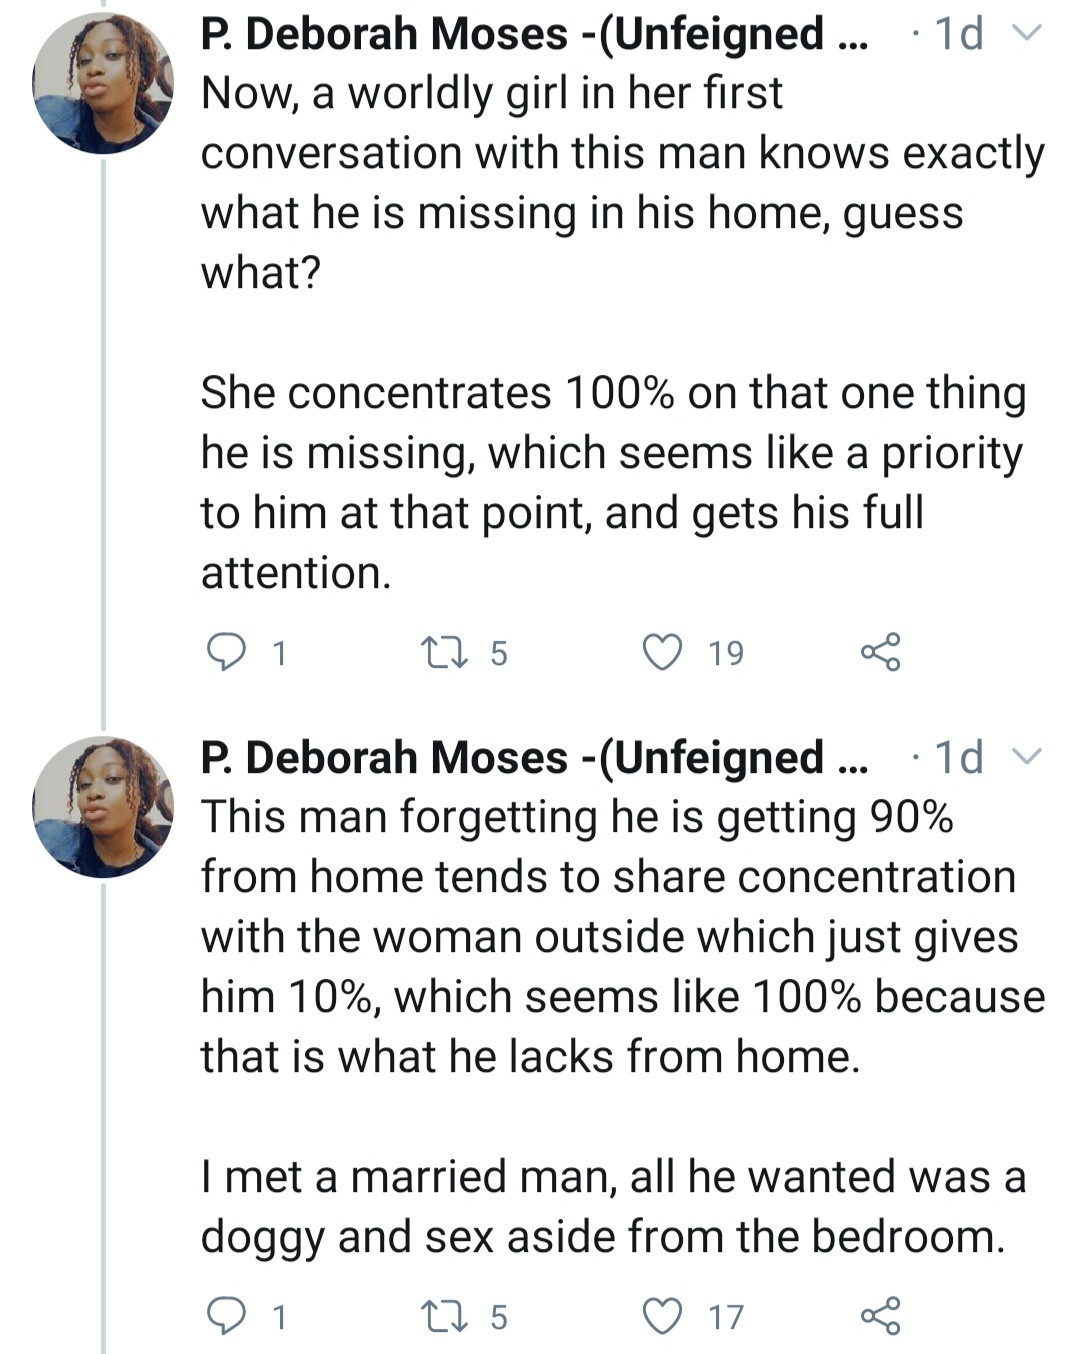 Repentant former side chic, who said she could get any married man she wanted, tells women how to stop their husbands from cheating